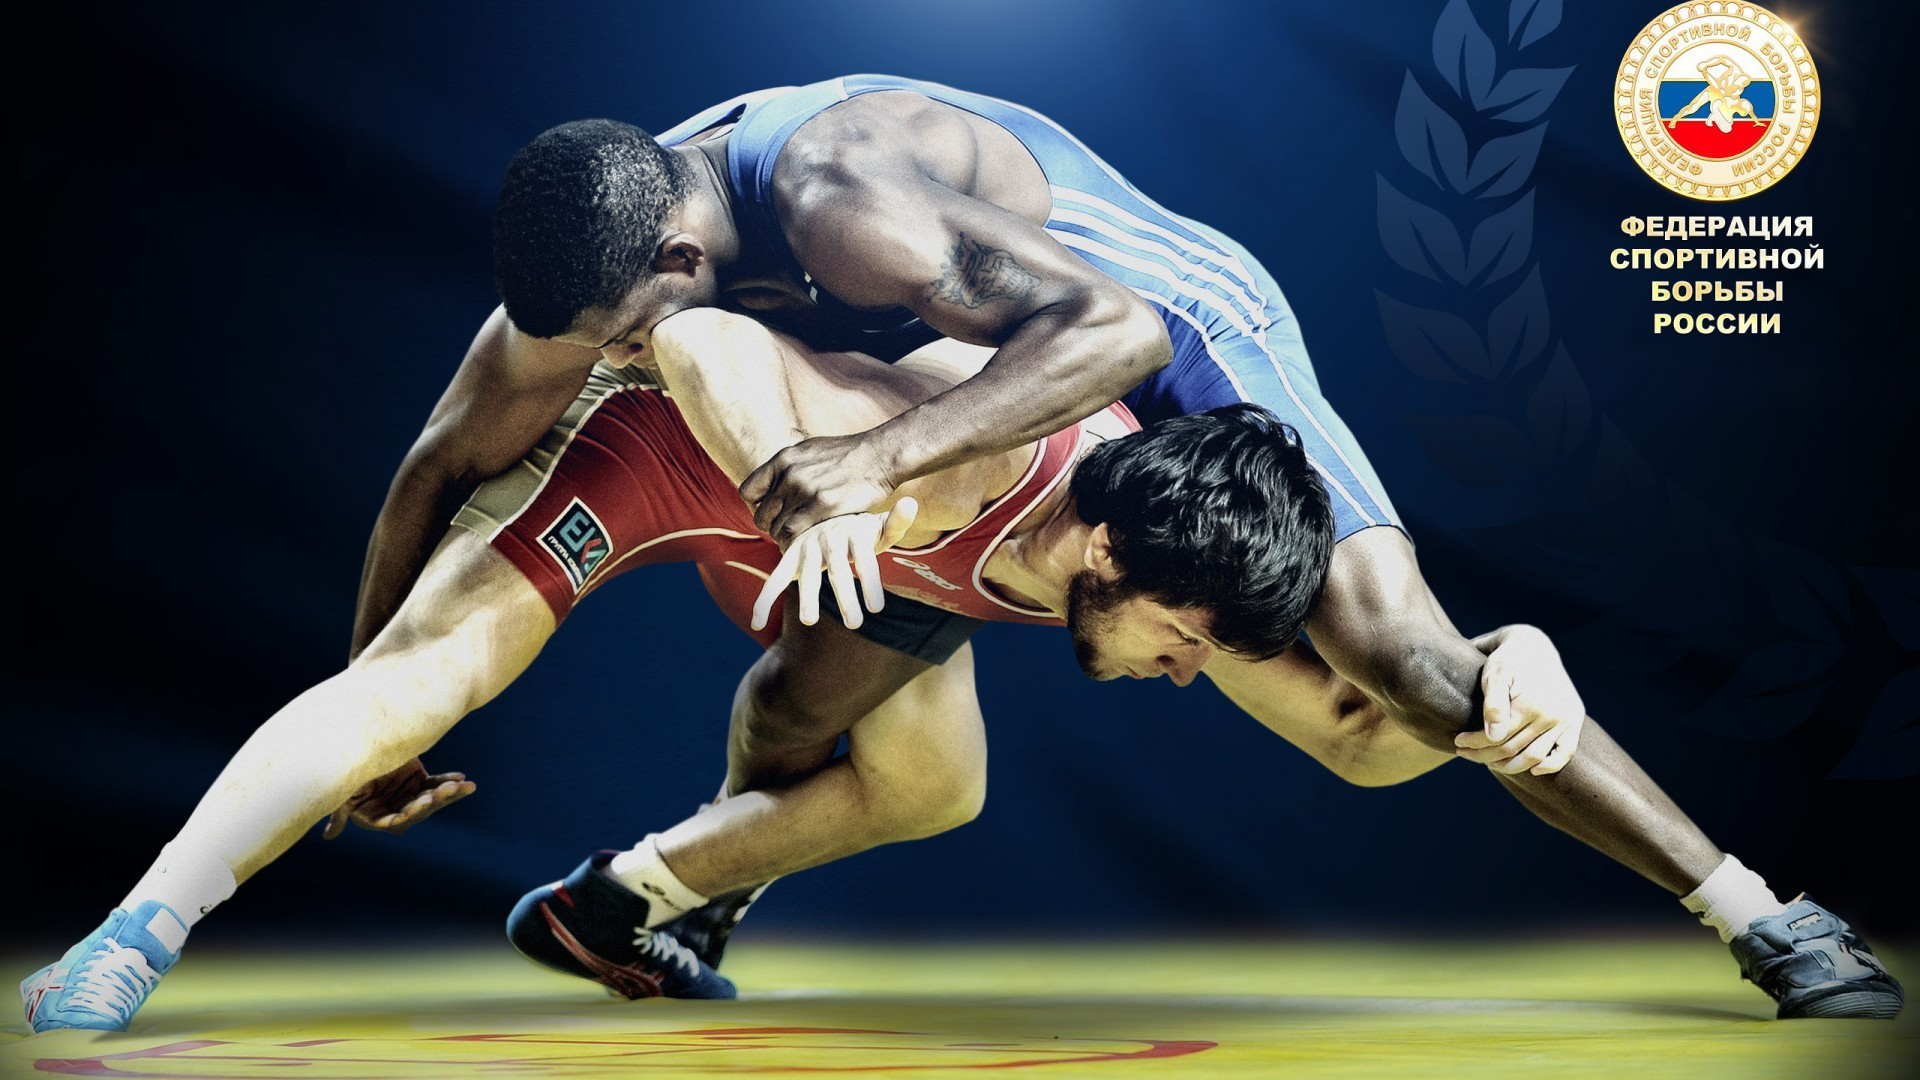 74 Ncaa Wrestling Wallpapers on WallpaperPlay 1920x1080